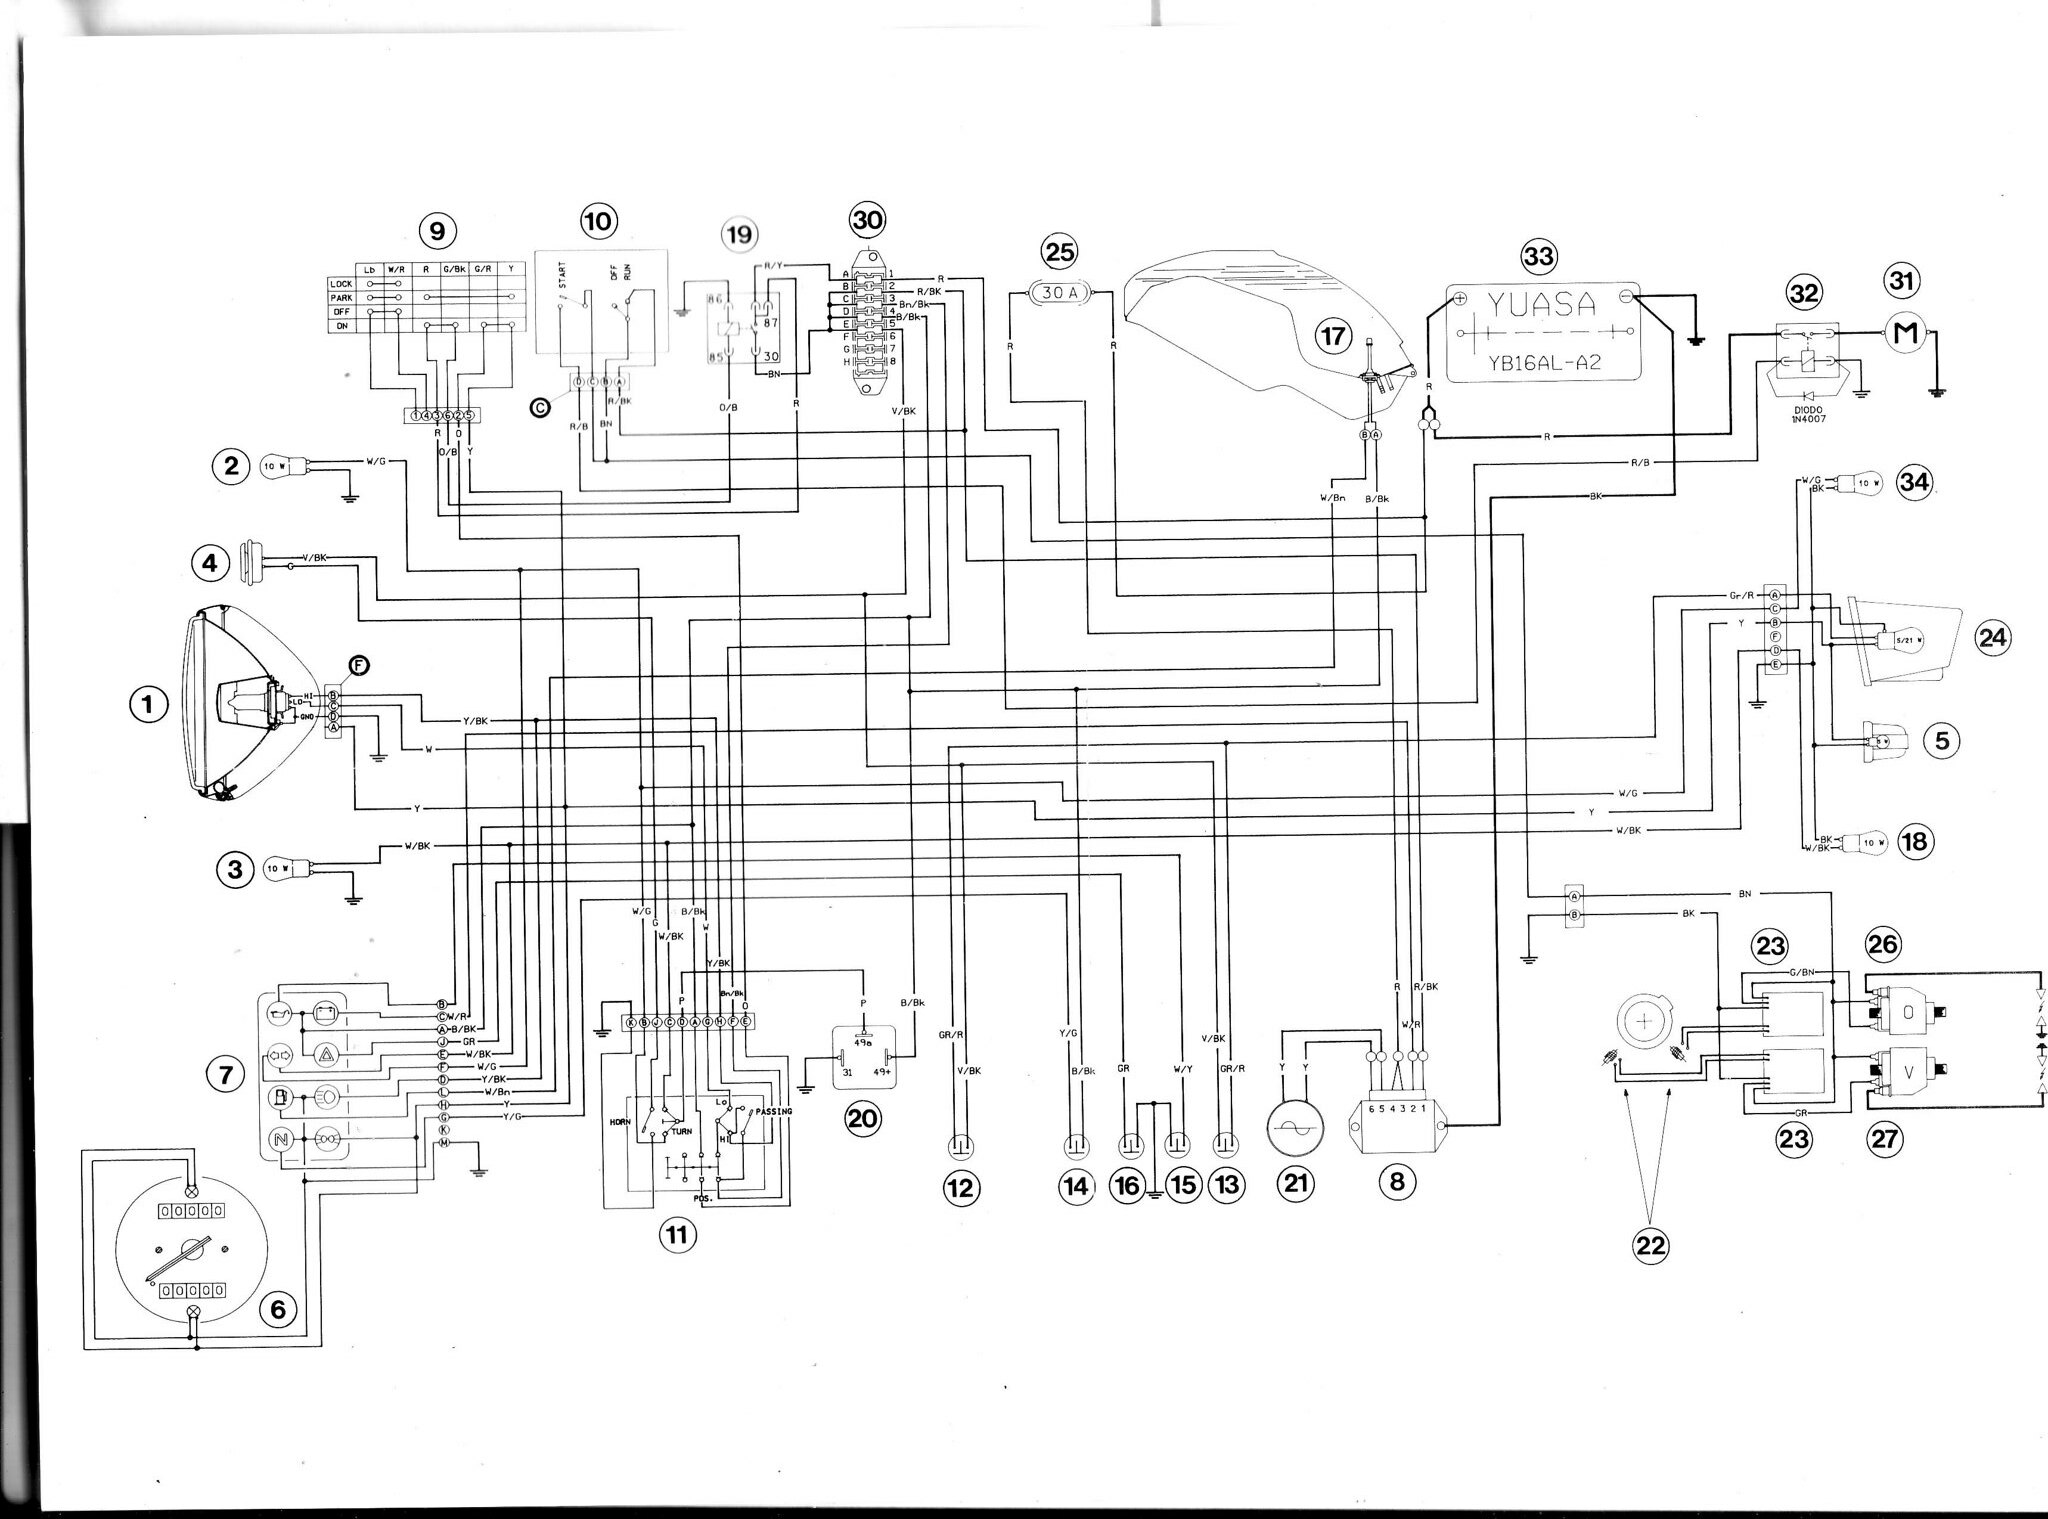 ducati 851 wiring diagram